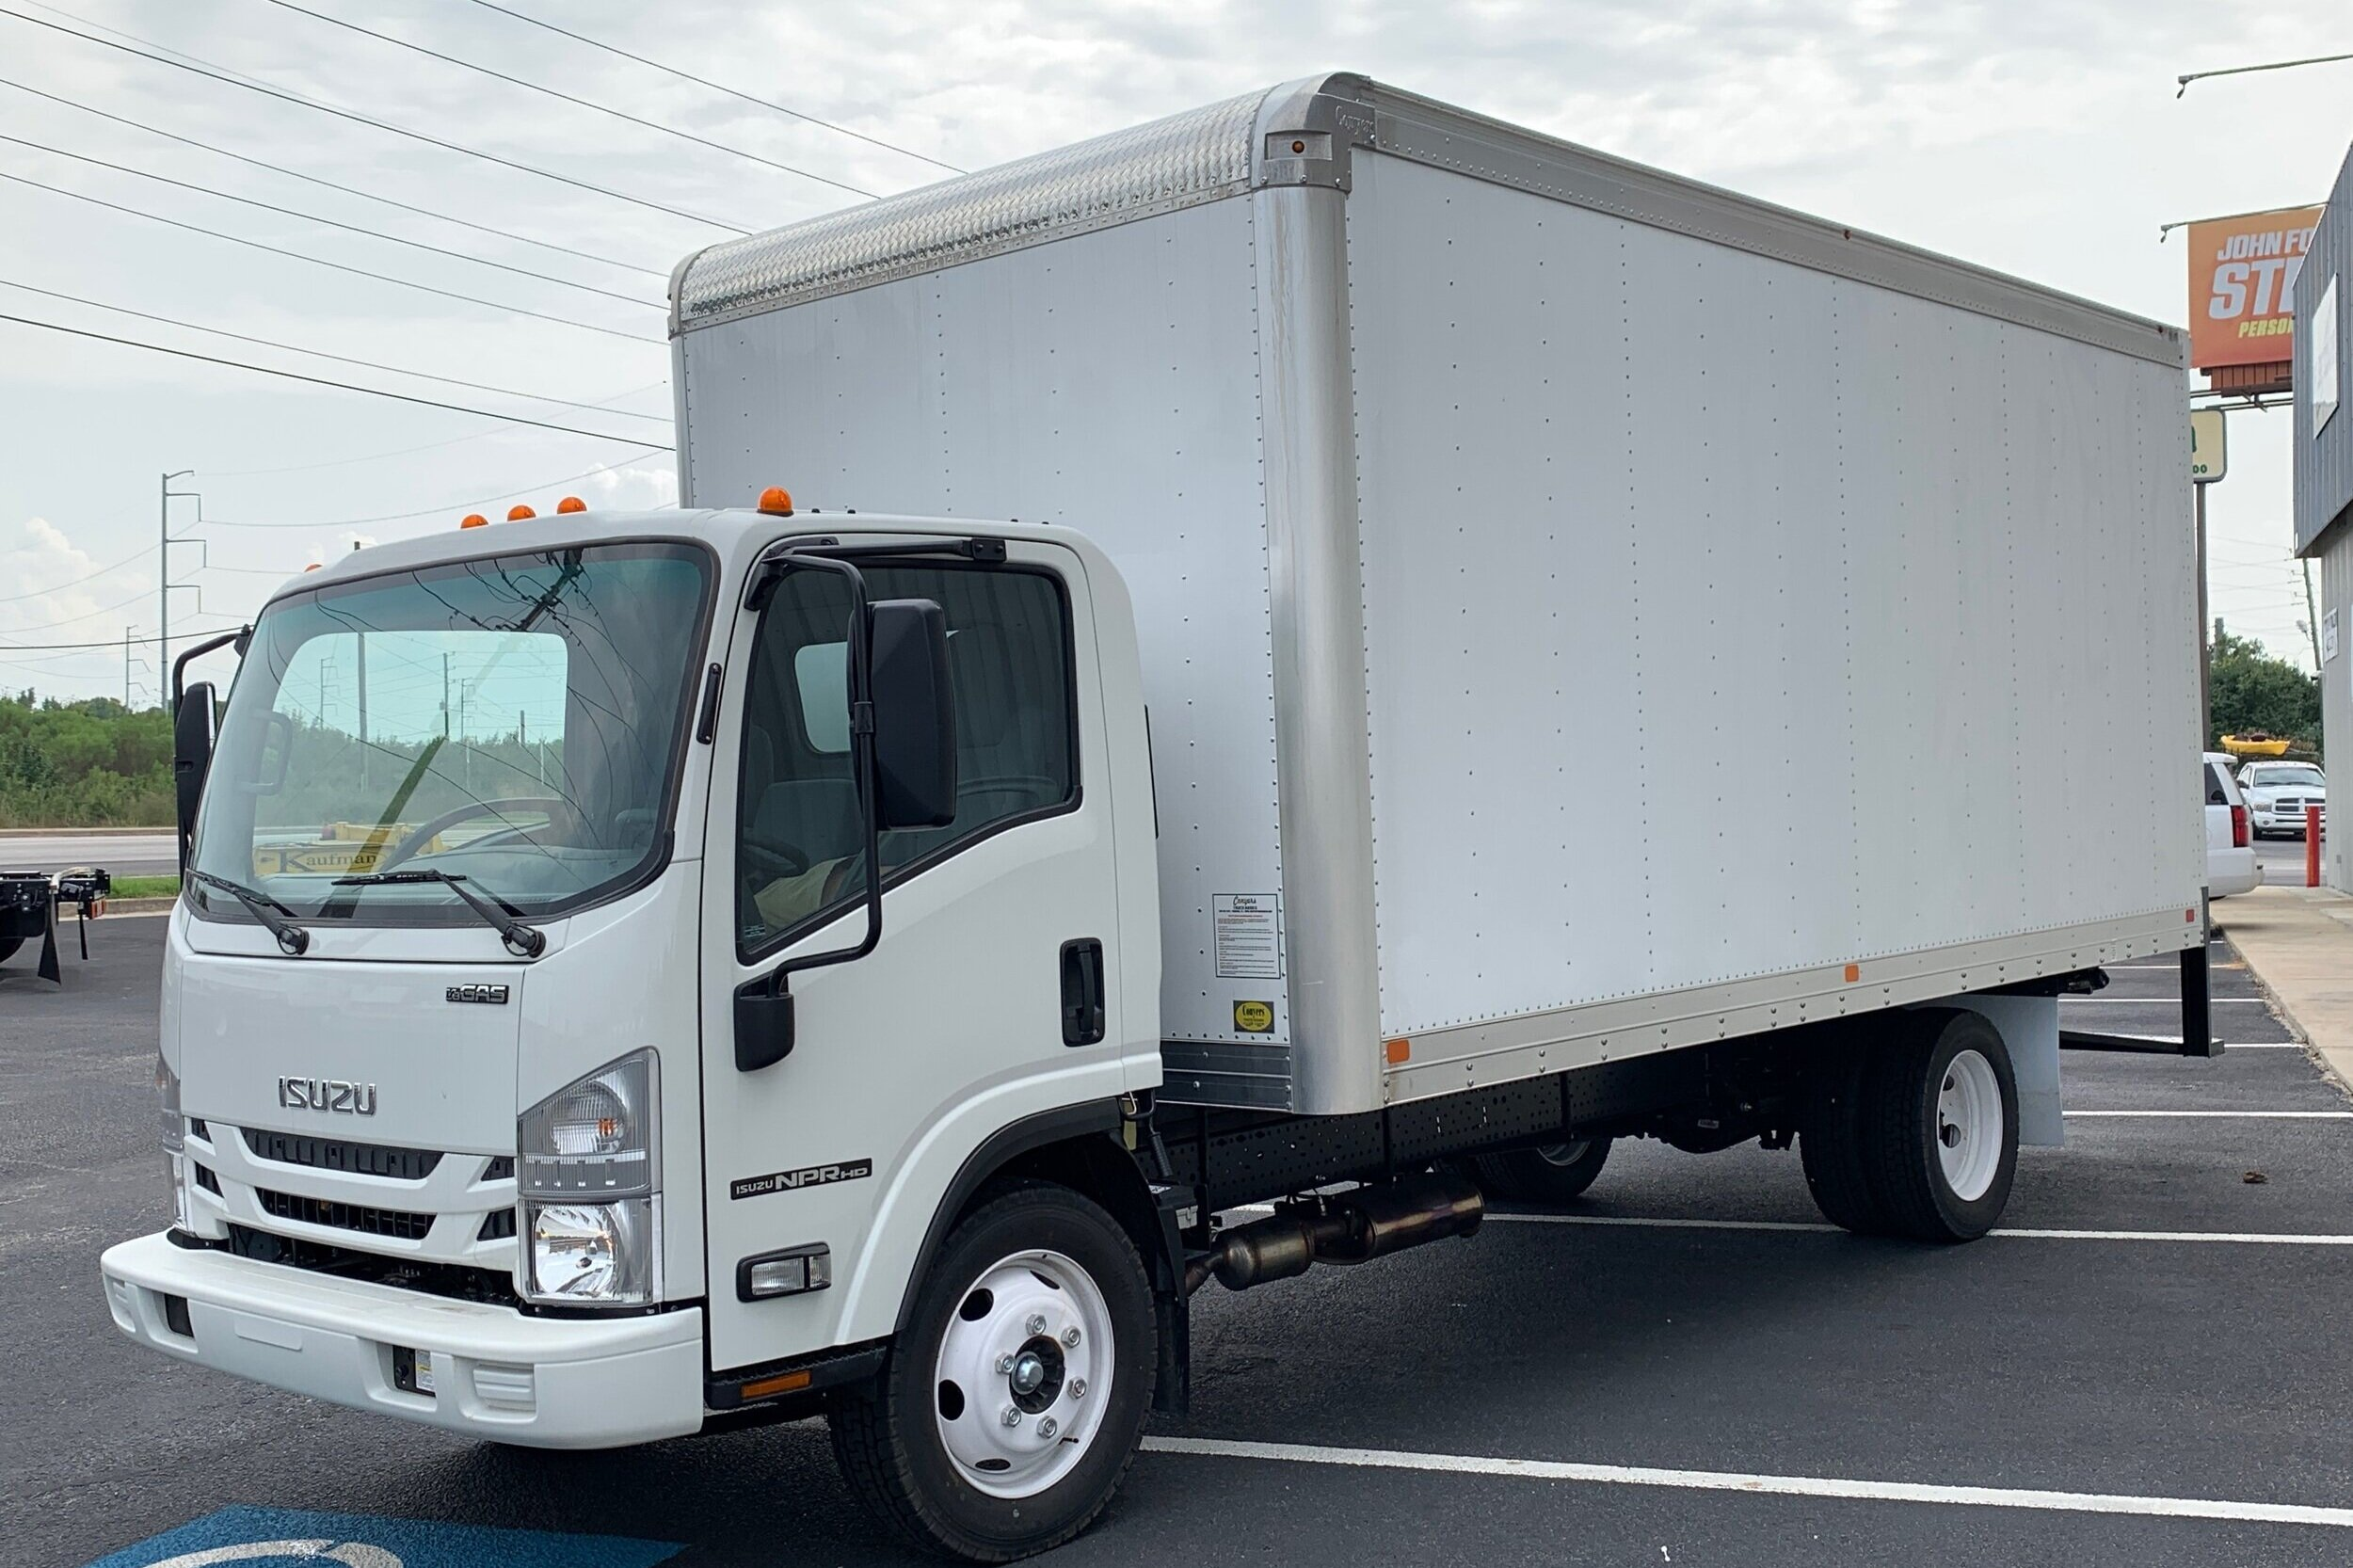 2019 Isuzu NPR Gas with 18' Box - Stock No: N2109Price: $47,560Financing Options:Class 4: 14,001 - 16,000 lbCategory: Box TruckCab Type: Cab OverEngine Make: IsuzuEngine Size: 6.0L GasFuel Type: GasolineVIN: 54DC4W1B3KS804428